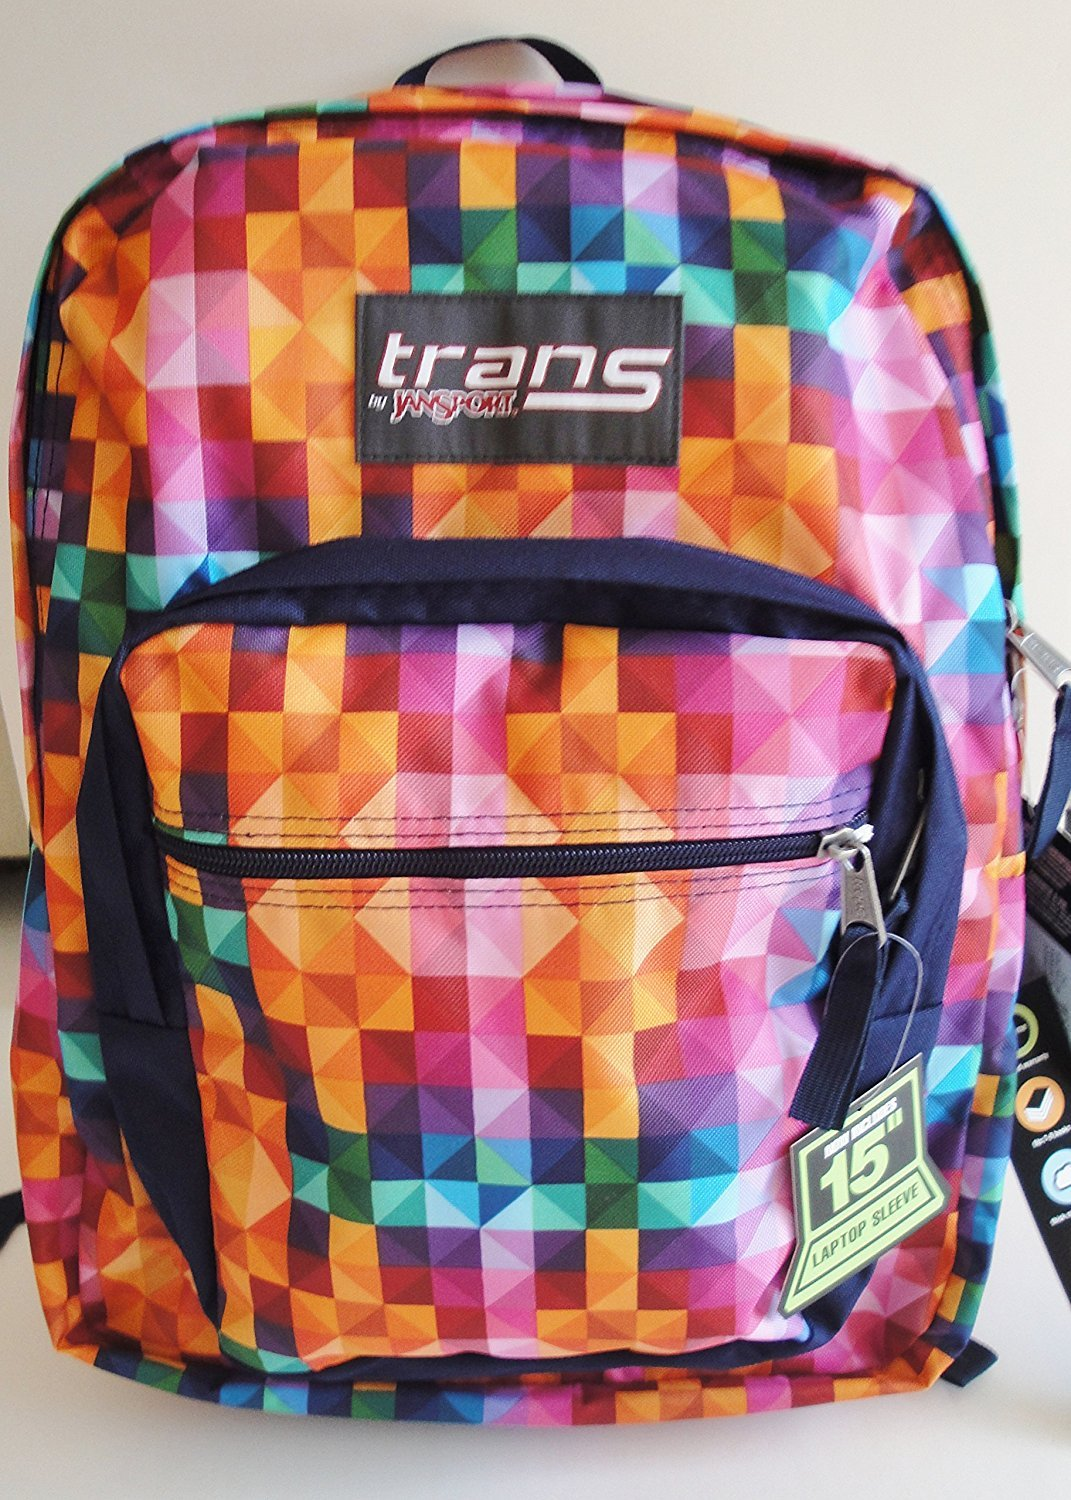 cc6995277ec Trans by Jansport Supermax Multi Spectrum Multi Color Backpack durable  modeling